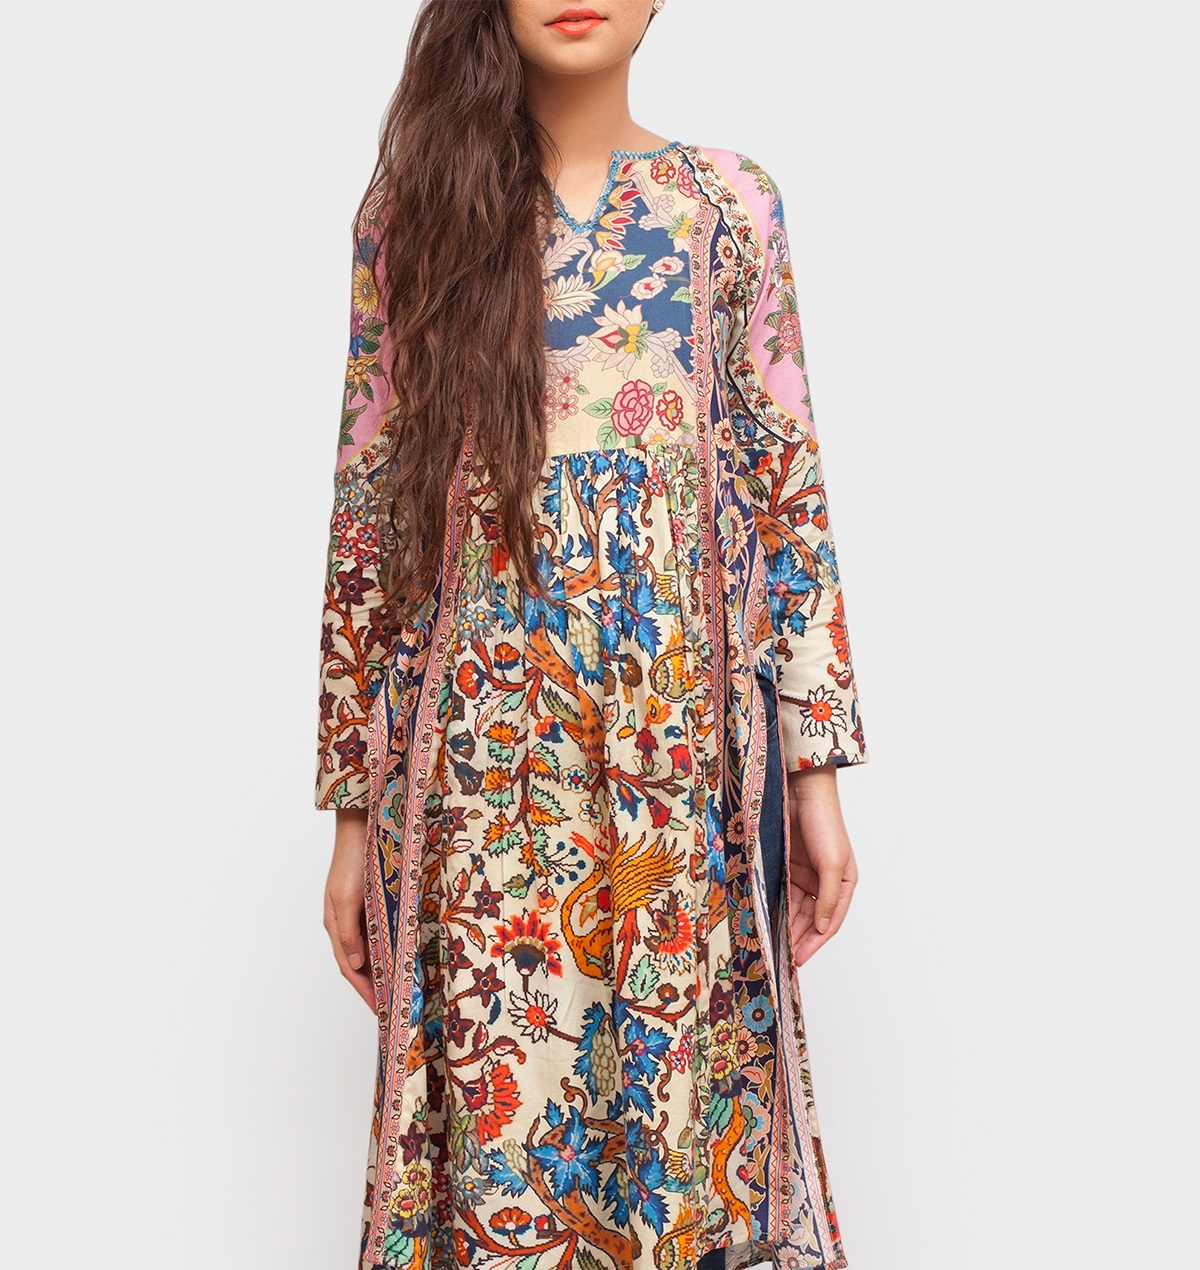 jacquard crepe printed winter outfit by Generation